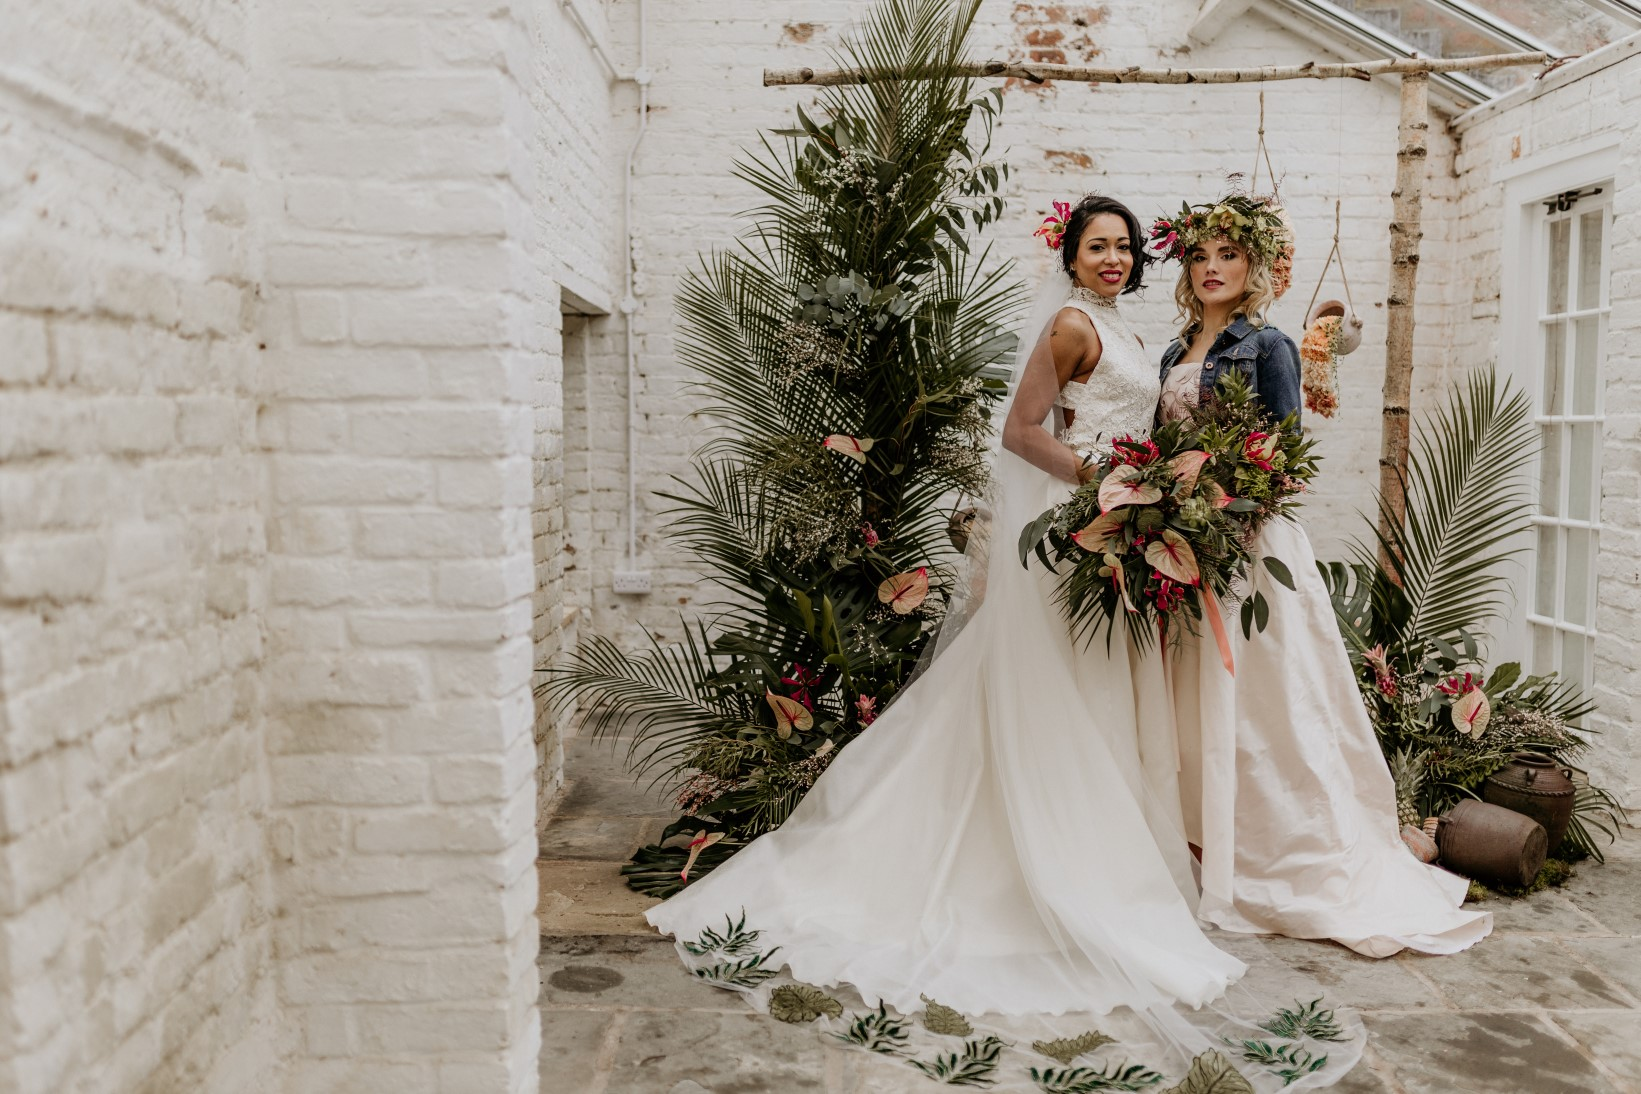 tropical opulence wedding- tropulence- twigs branch photography- unconventional wedding- bespoke bridalwear- unique wedding dress- tropical wedding decor